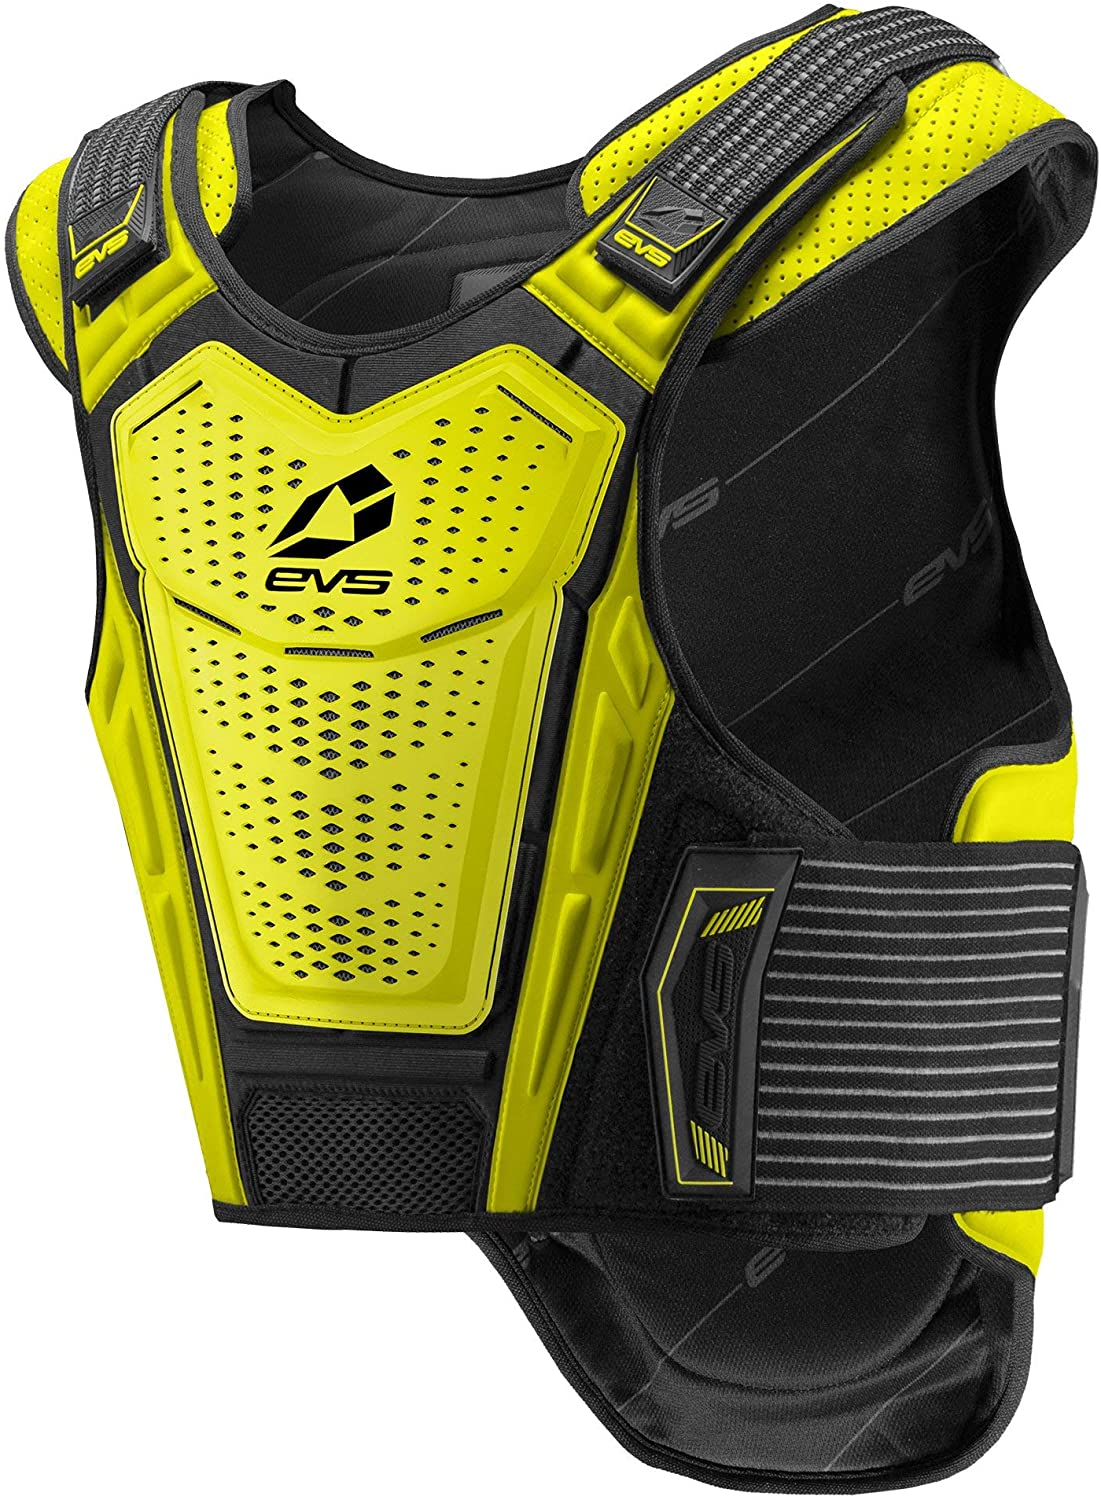 EVS Sports Men's Protective (Sport Vest) (Hi-Viz Small/Medium